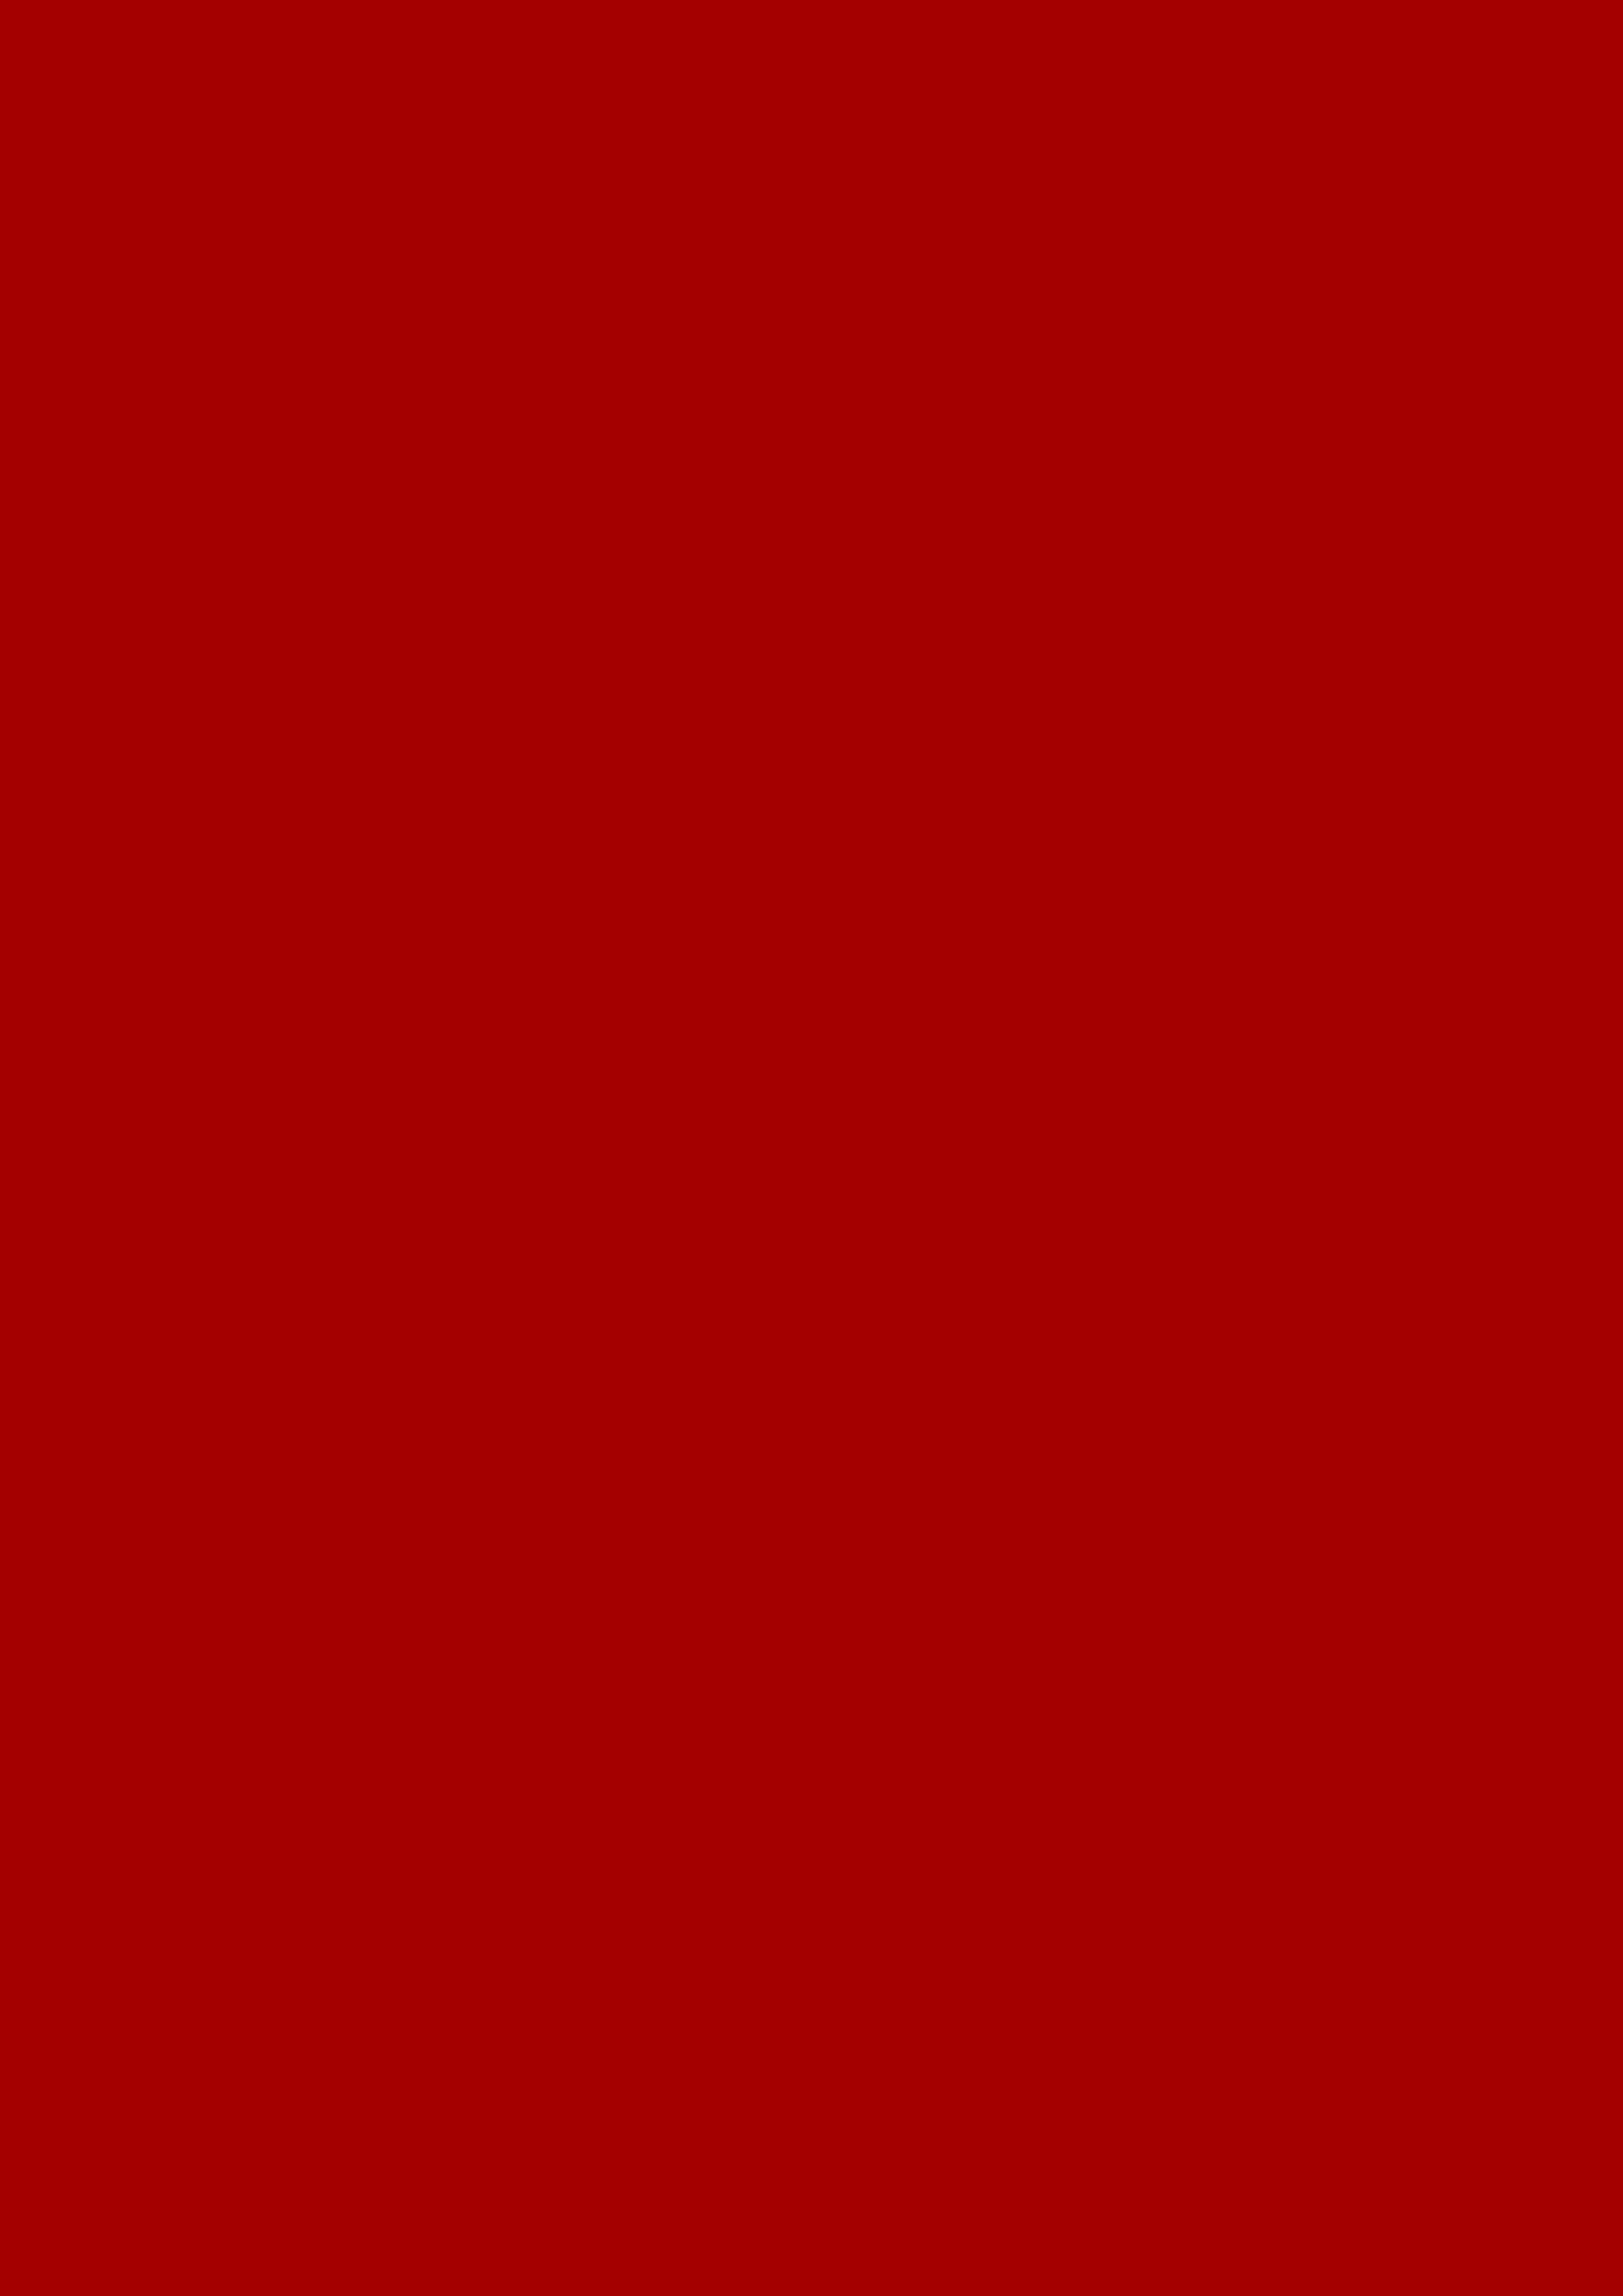 2480x3508 Dark Candy Apple Red Solid Color Background